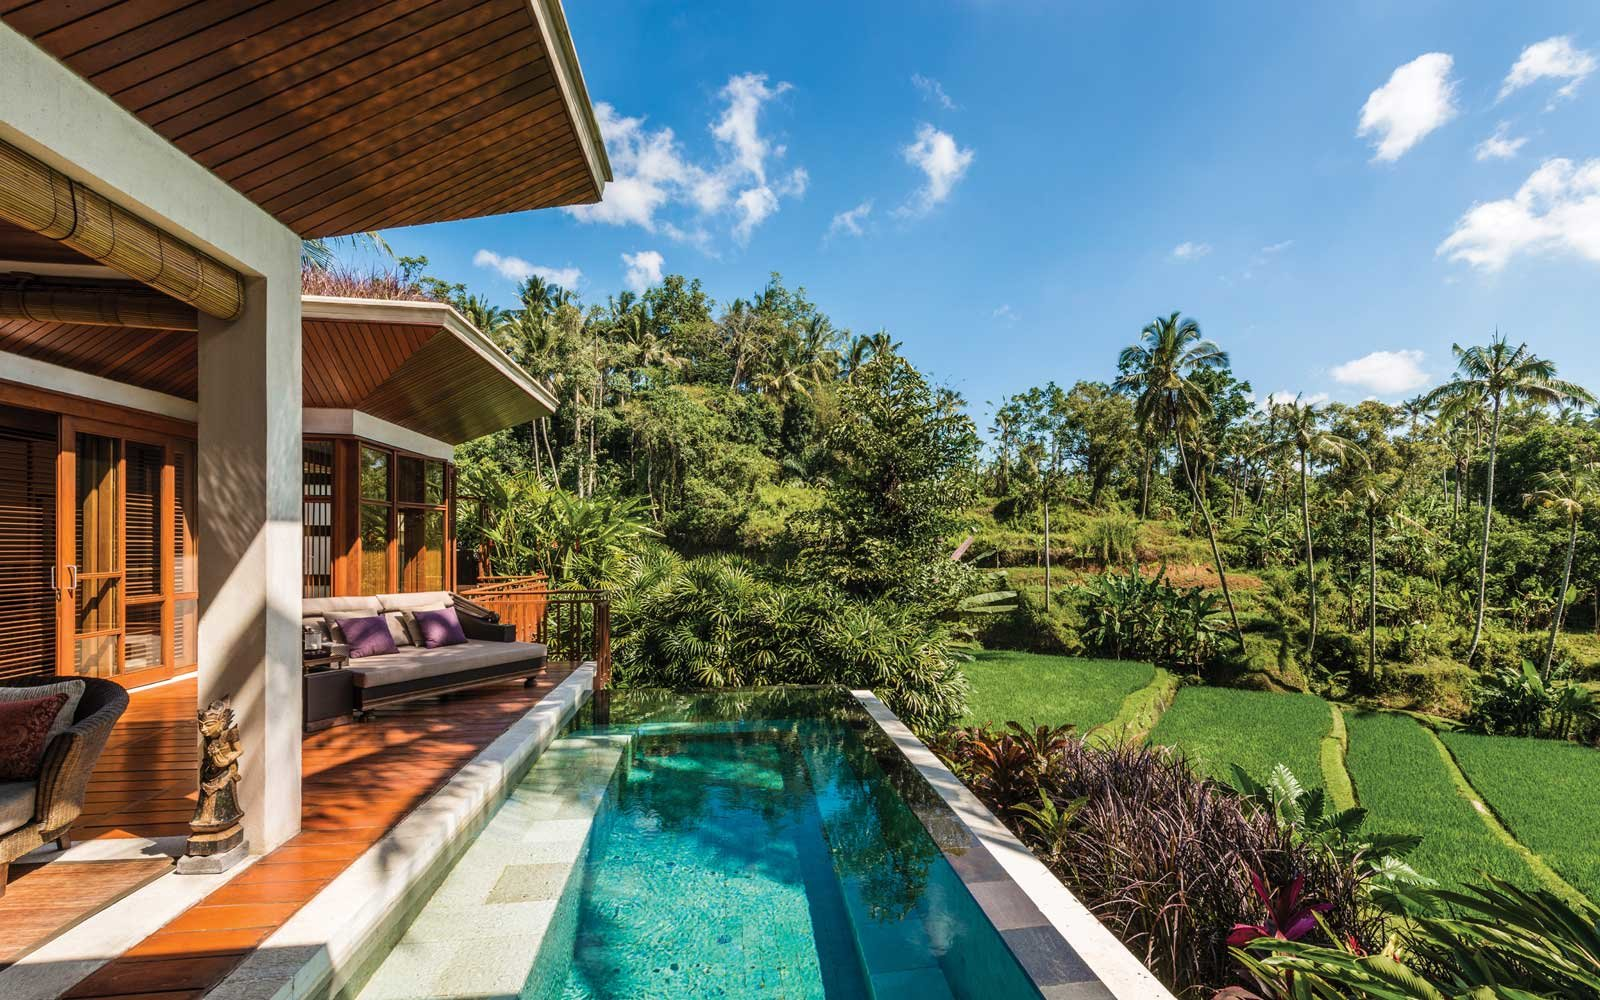 000-overall-top-hotels-four-seasons-bali-TOP100HOTELSWB18.jpg